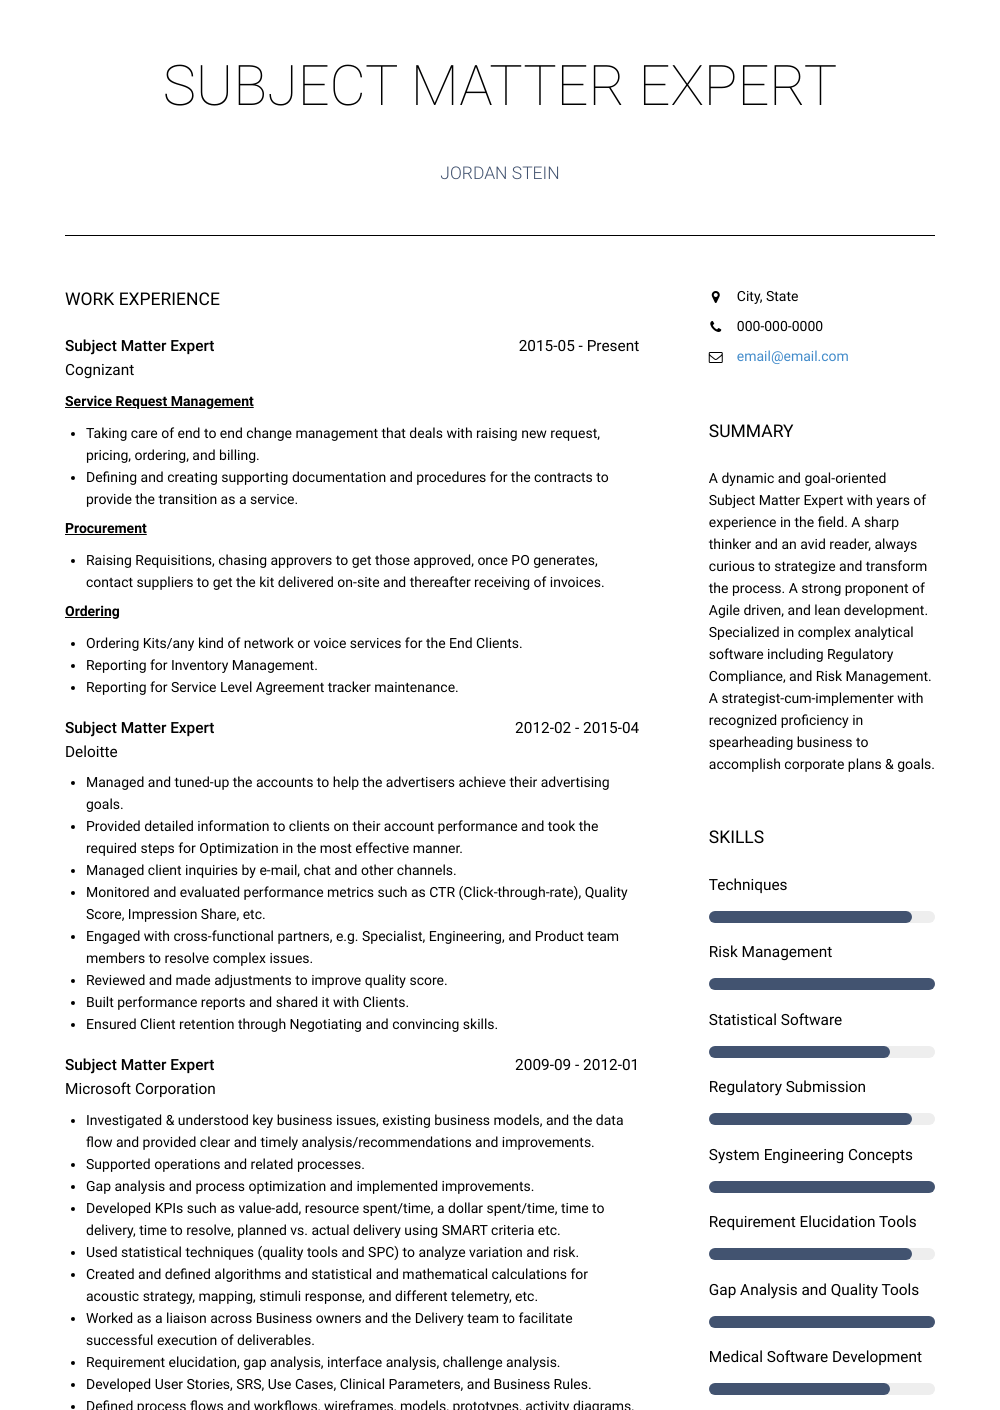 Subject Matter Expert Resume Sample and Template